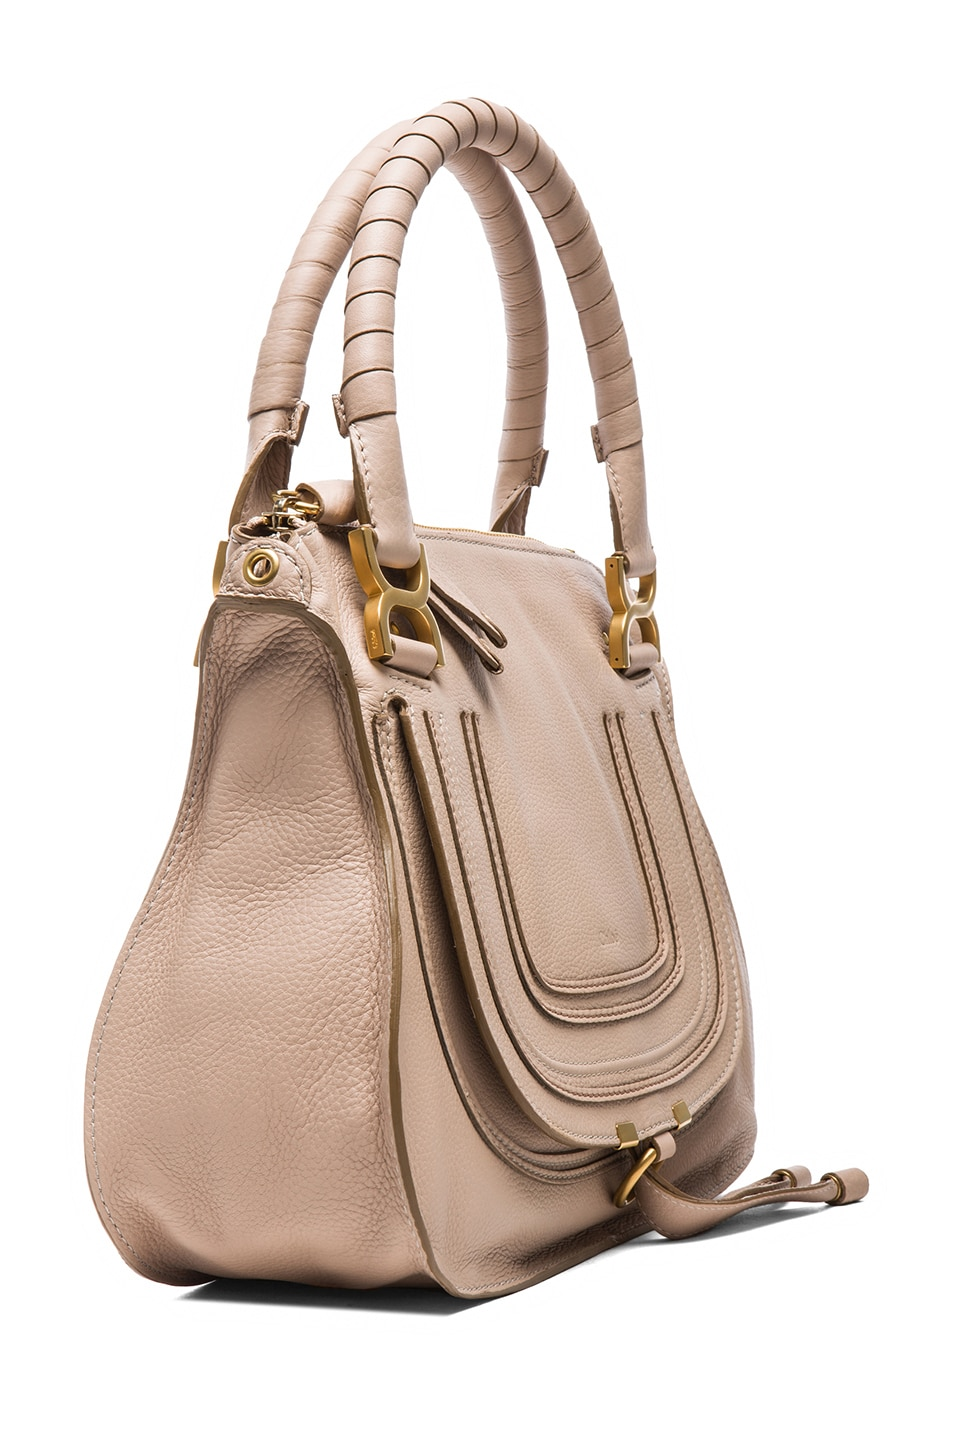 Image 3 of Chloe Medium Marcie Shoulder Bag in Rope Beige